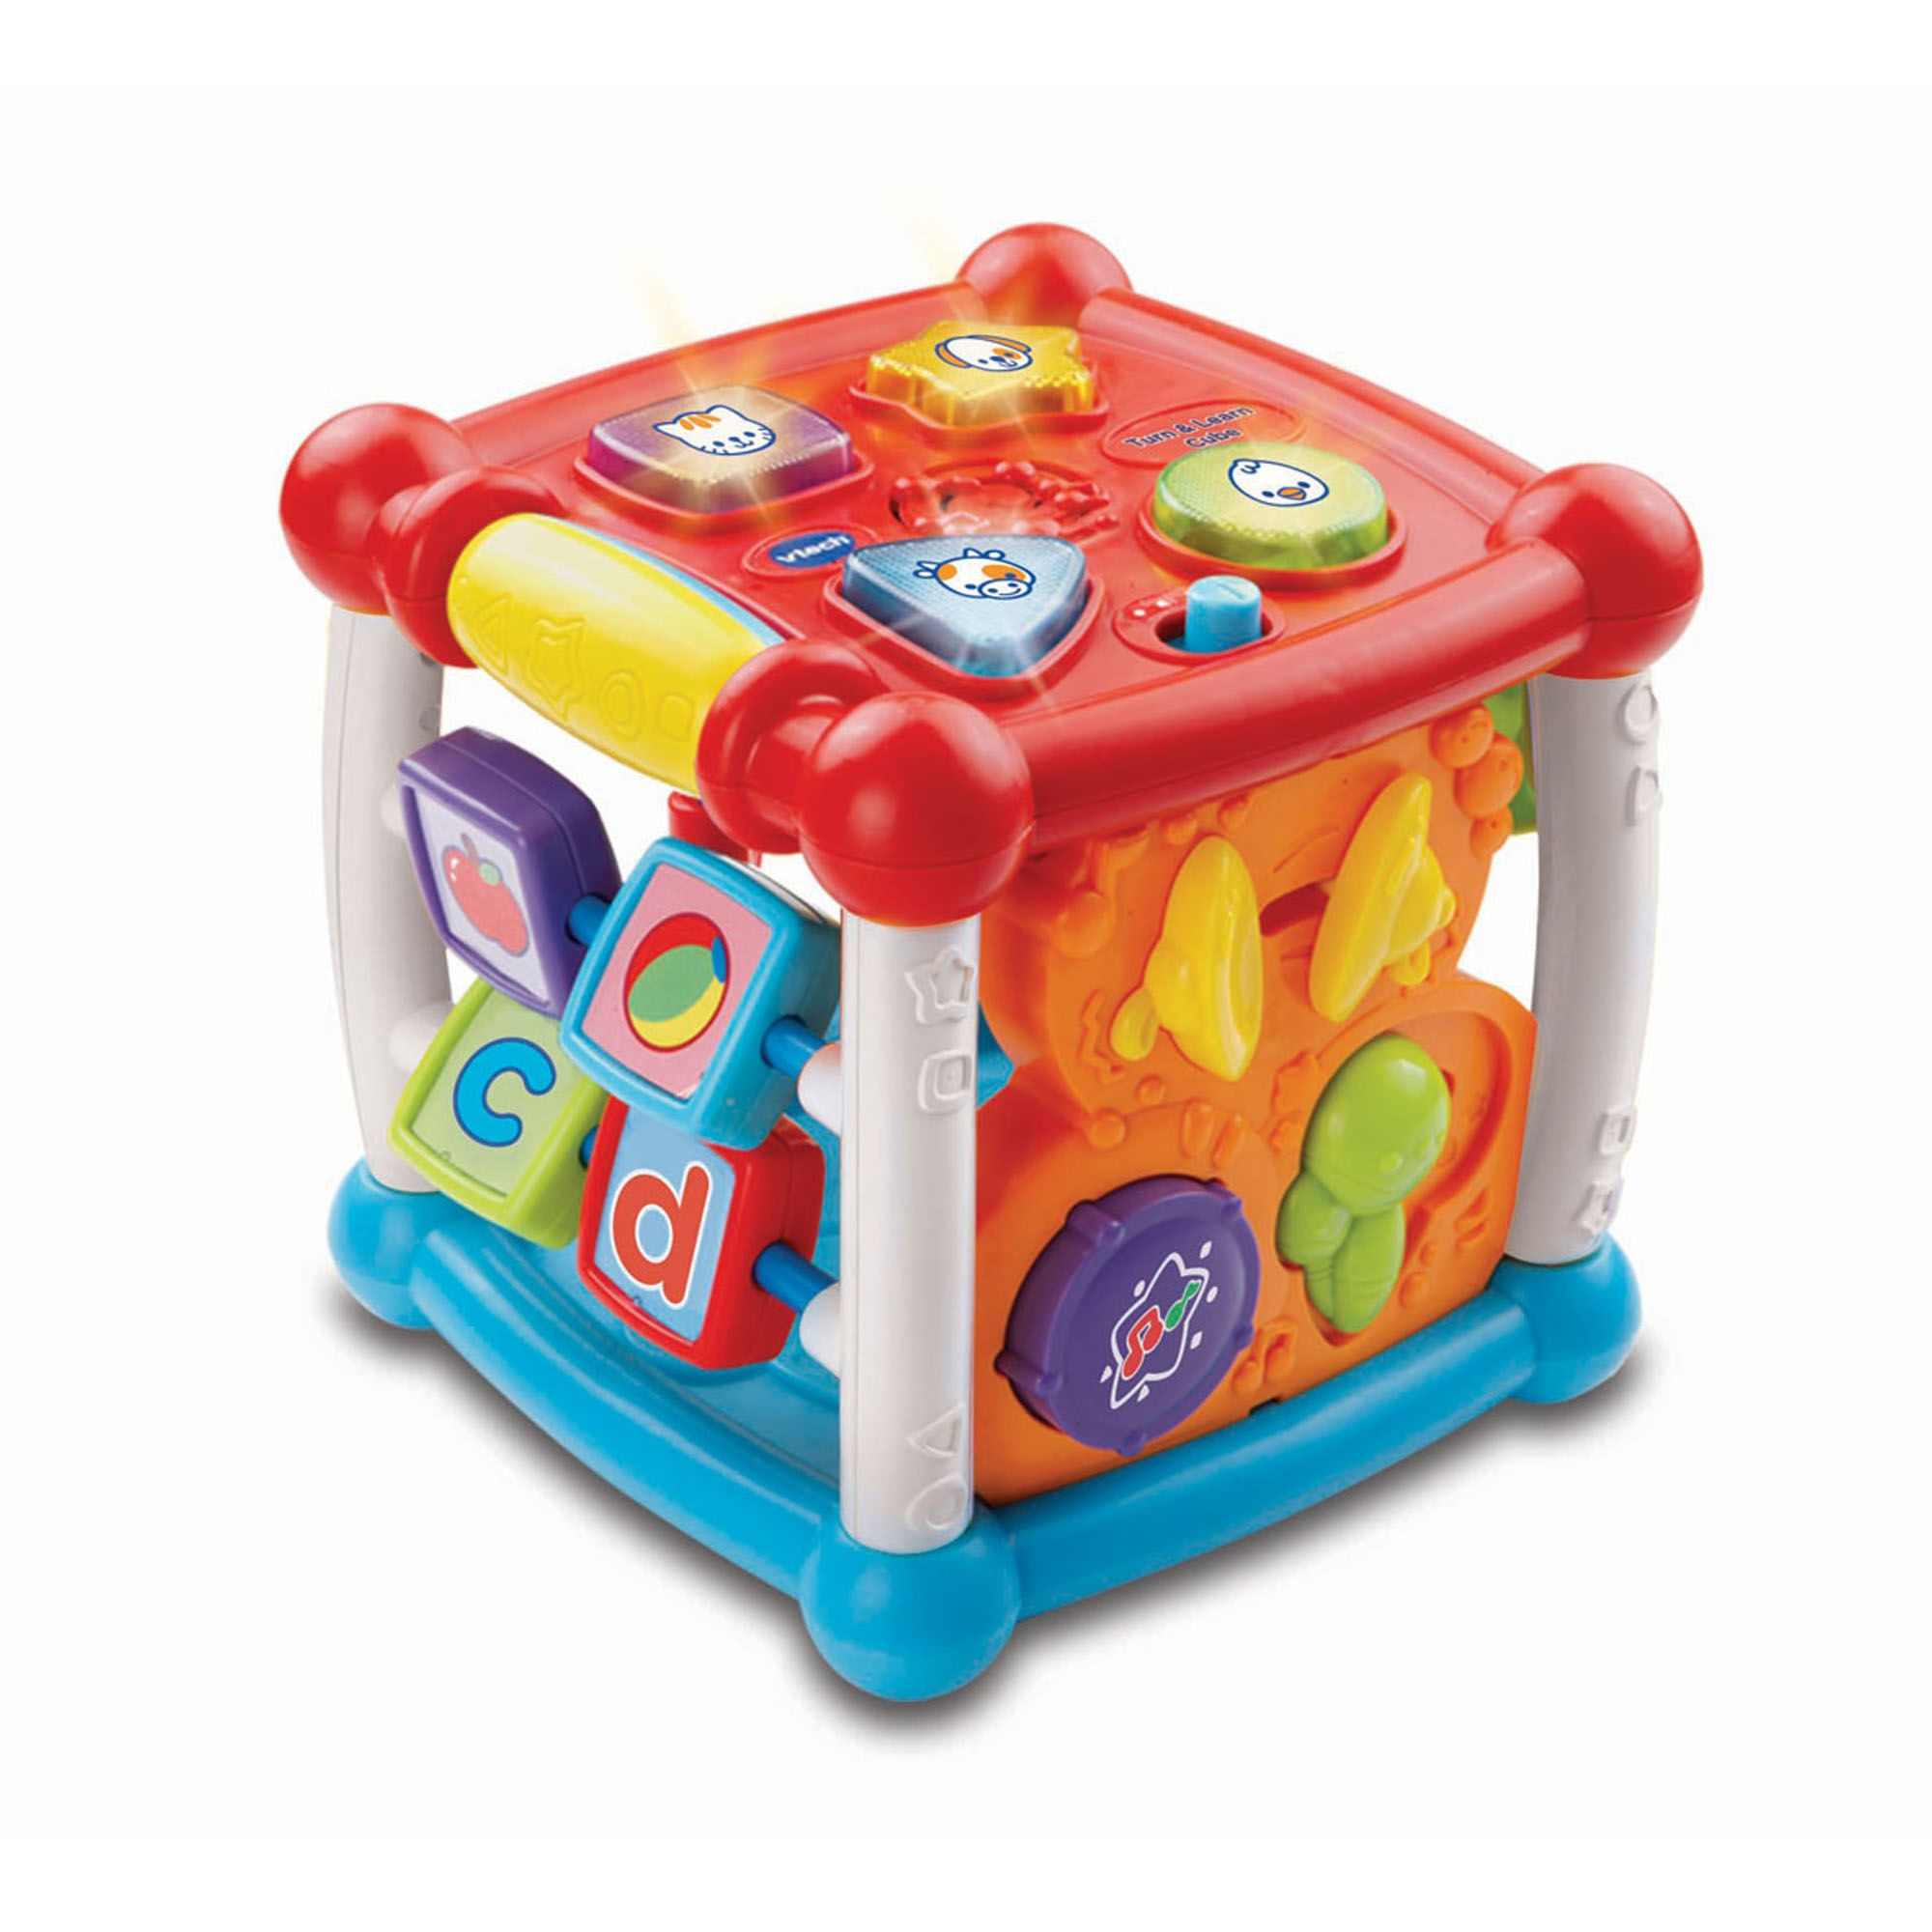 Image of Vtech Turn & Learn Cube